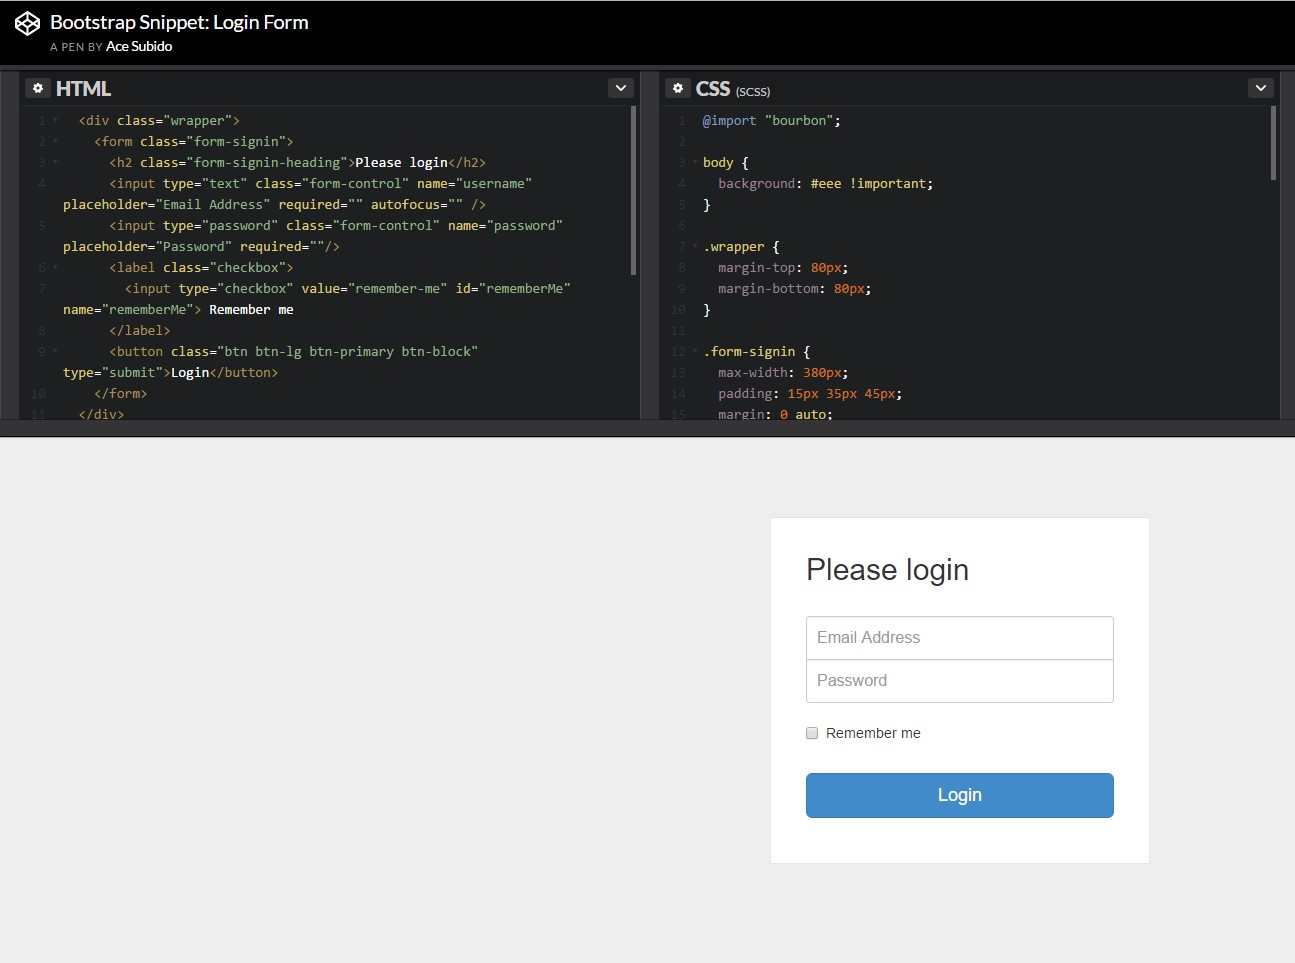 An additional example of Bootstrap Login Form